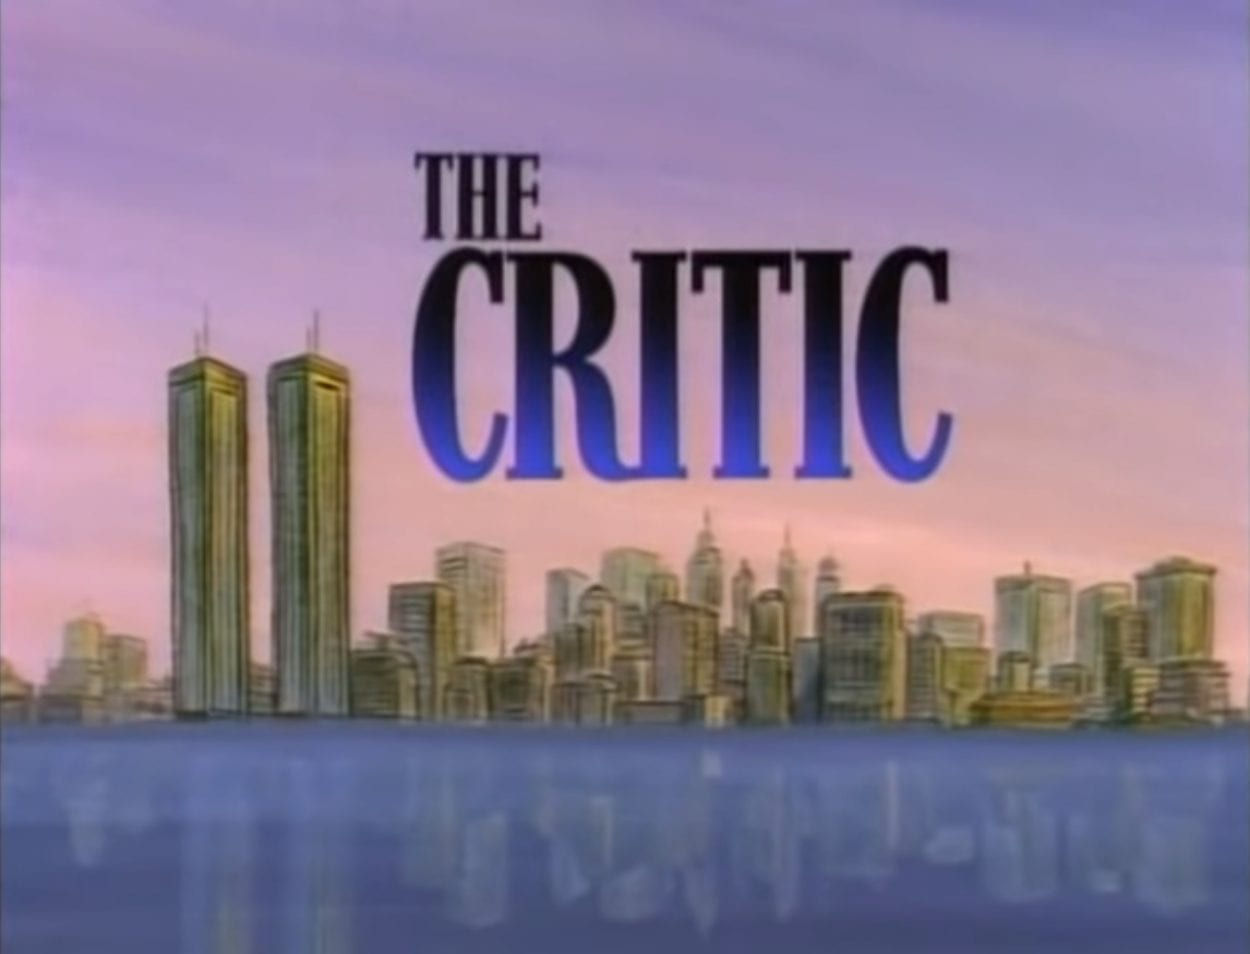 The opening card for The Critic